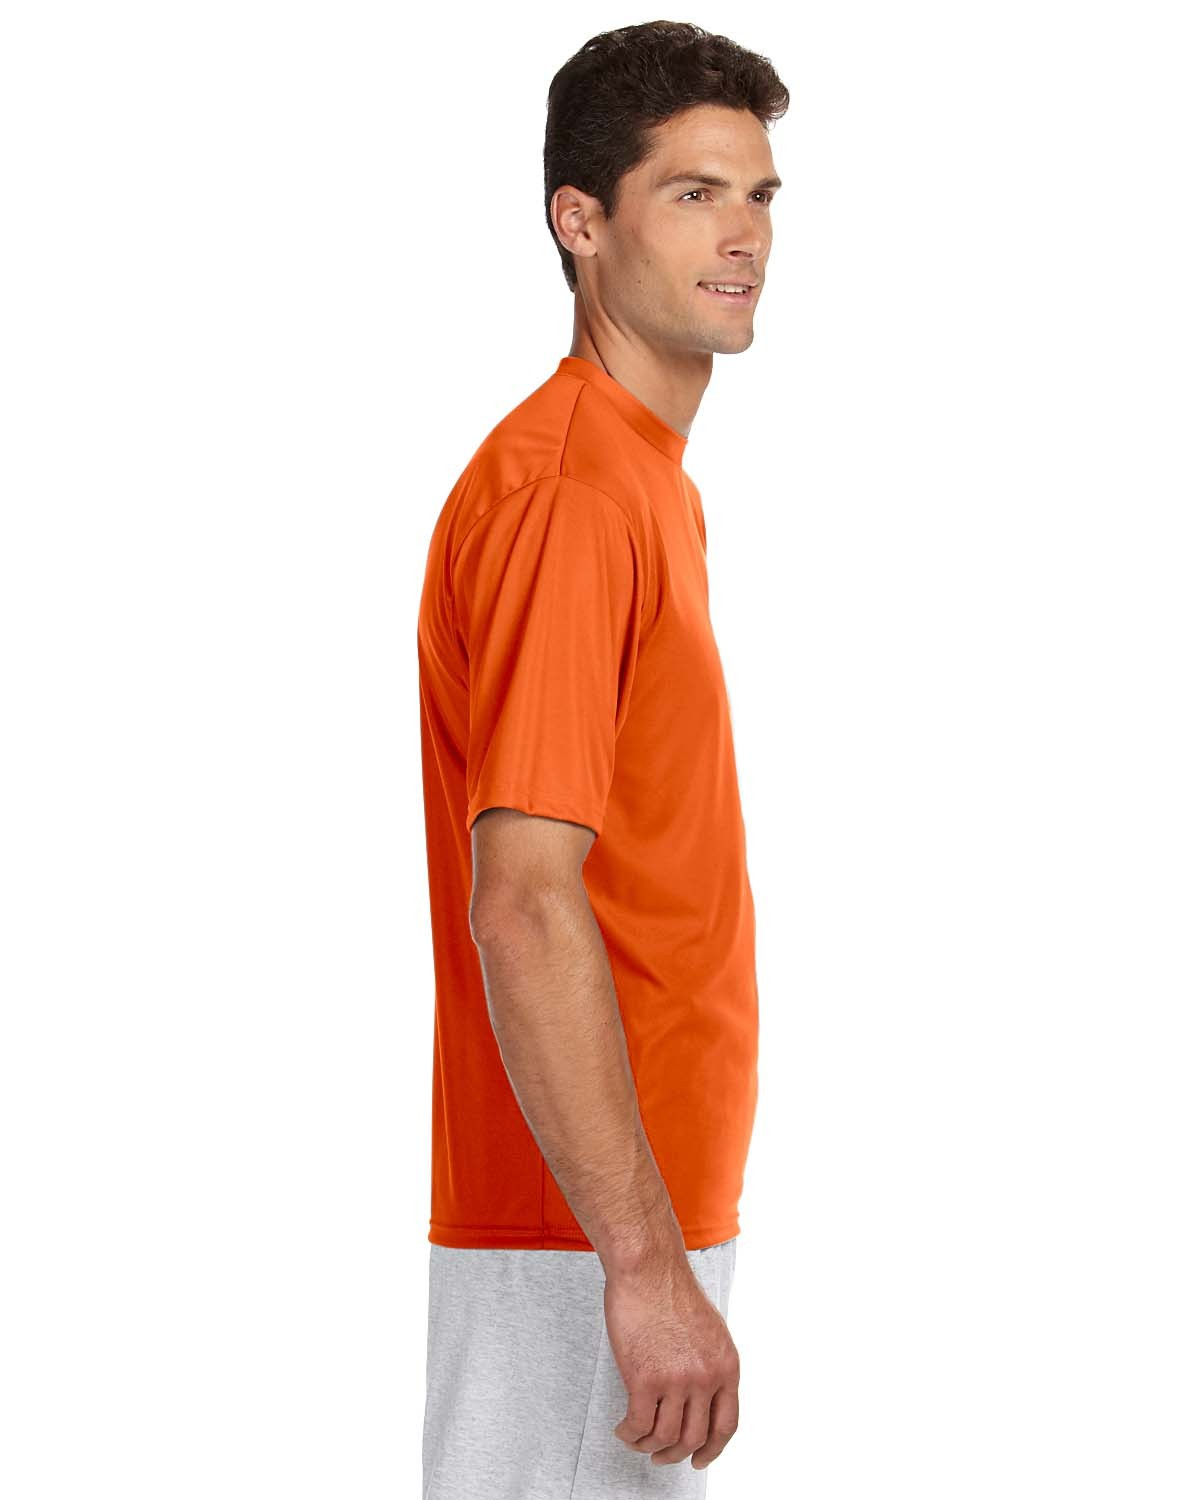 N3142 A4 Apparel ATHLETIC ORANGE